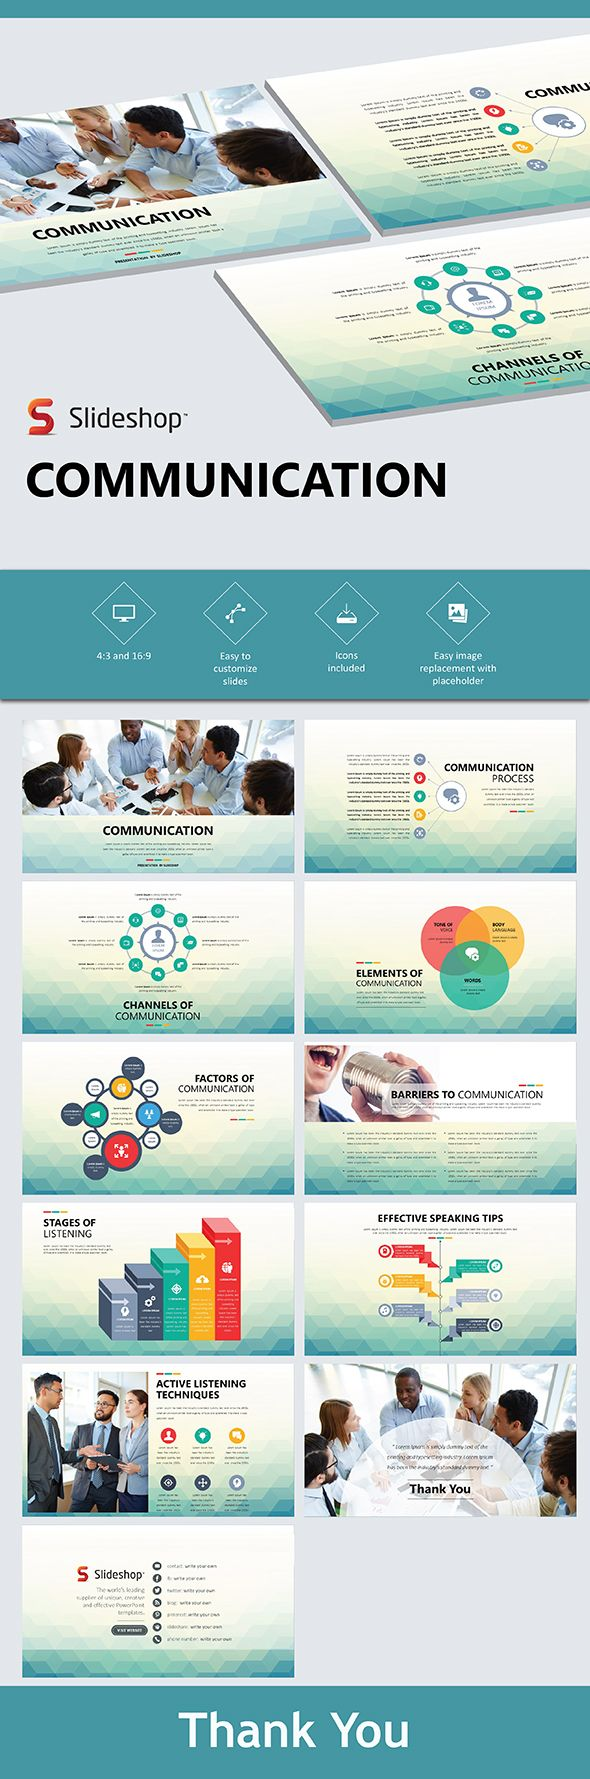 Communication - PowerPoint Templates Presentation Templates Download here: https://graphicriver.net/item/communication/19853600?ref=classicdesignp